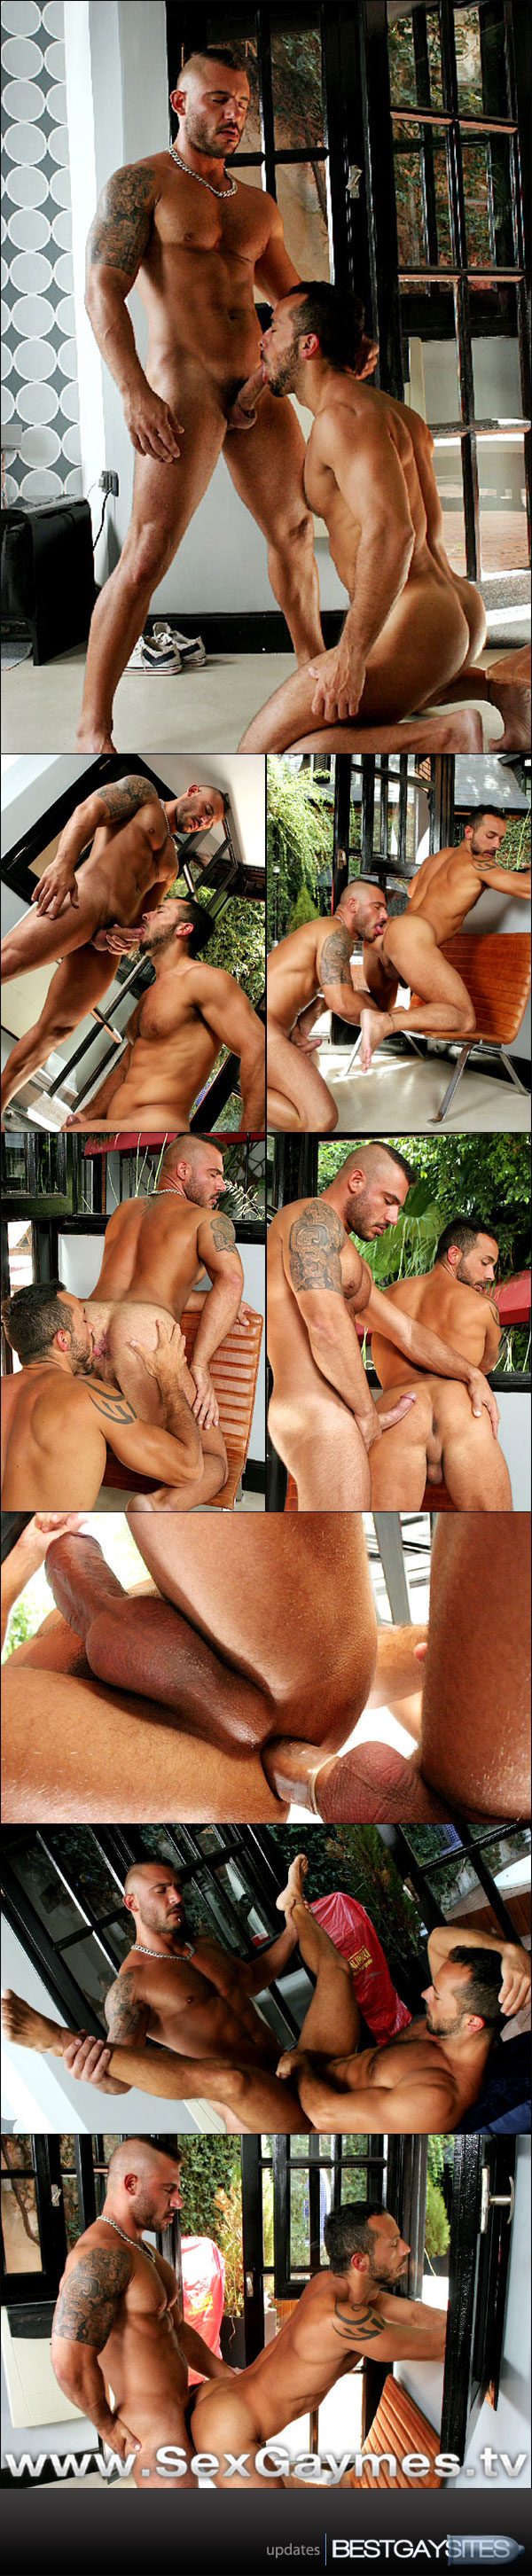 Sex Gaymes - Pedro Andreas & Nico Aragon